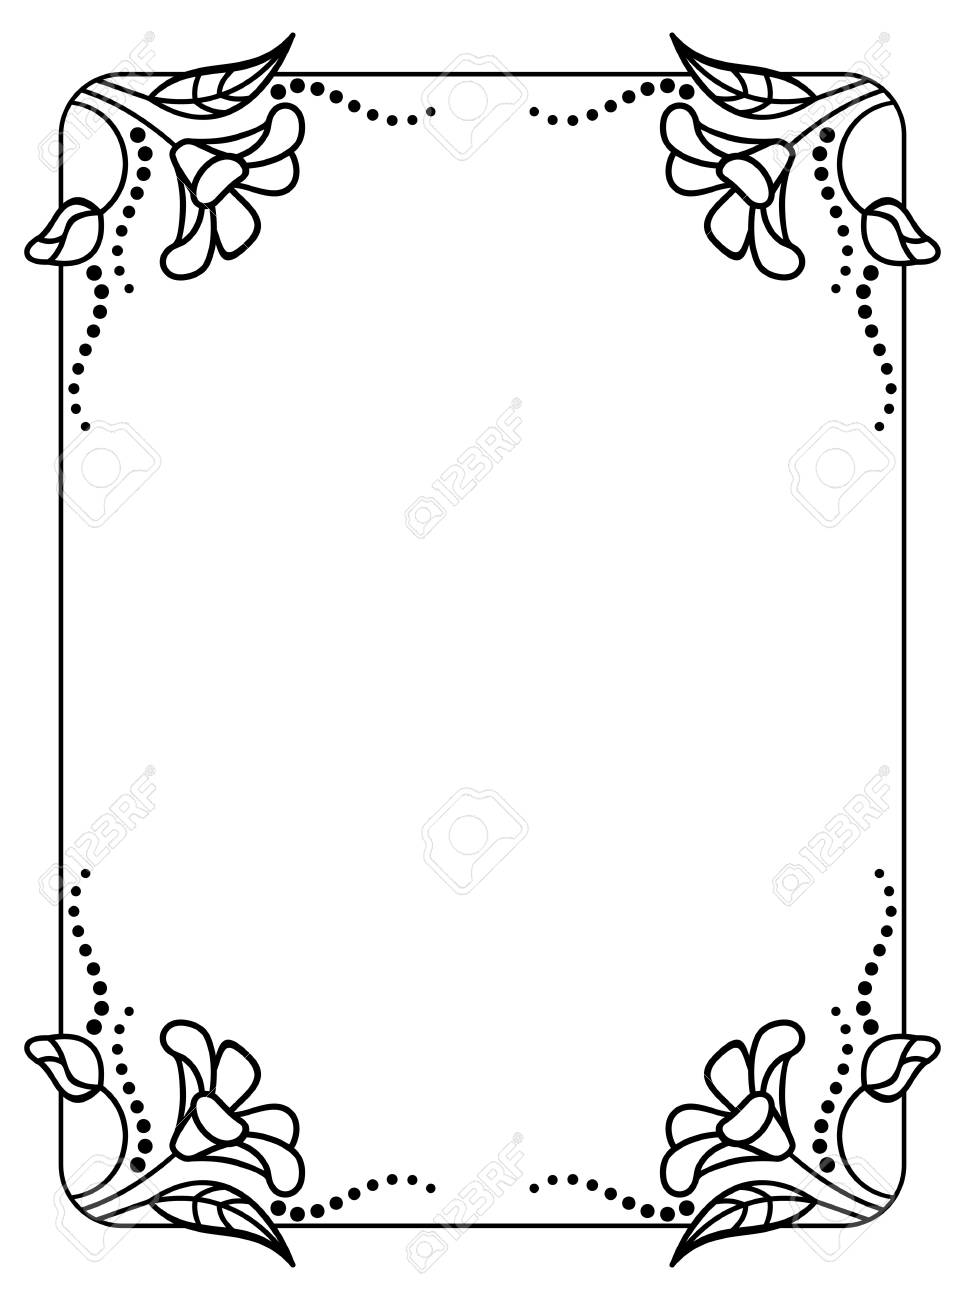 Black And White Frame Outline Decorative Flowers. Copy Space ...